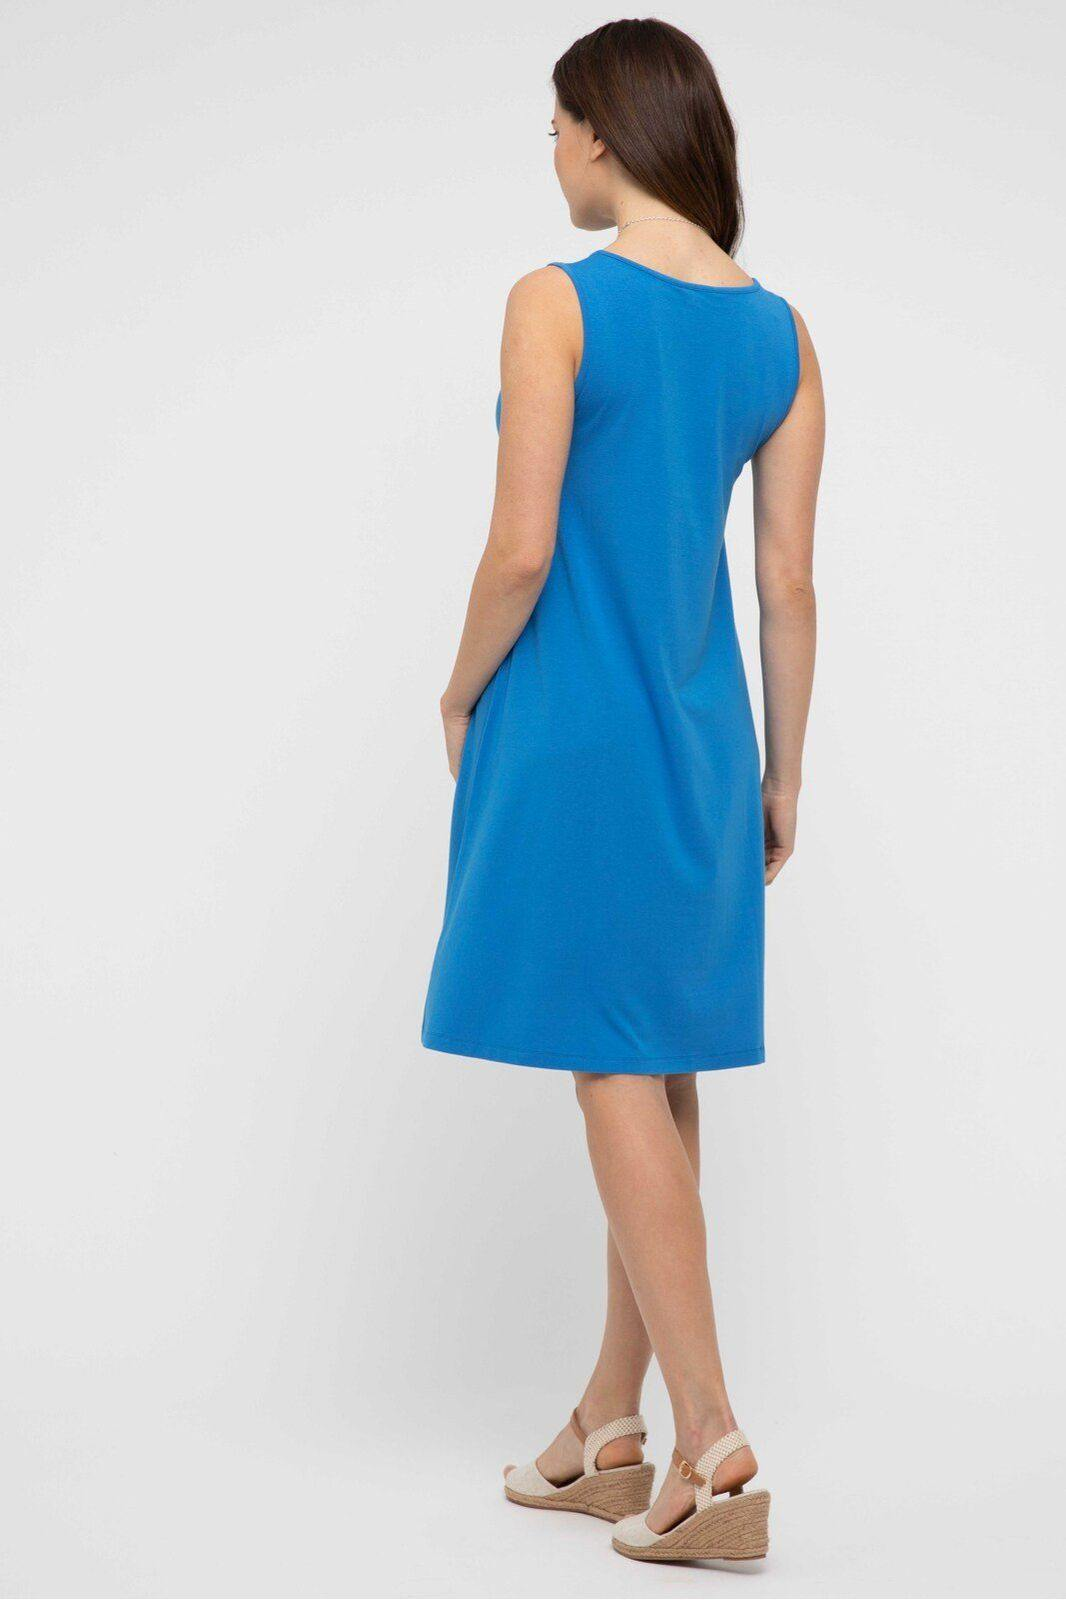 Bamboo Body Adele Dress - French Blue style {{product.sku}} - buy from Weekends on 2nd Ave at {{shop.url}} or visit our shop at Second Ave Plaza on the corner of Beaufort Street & Second Avenue Mount Lawley WA